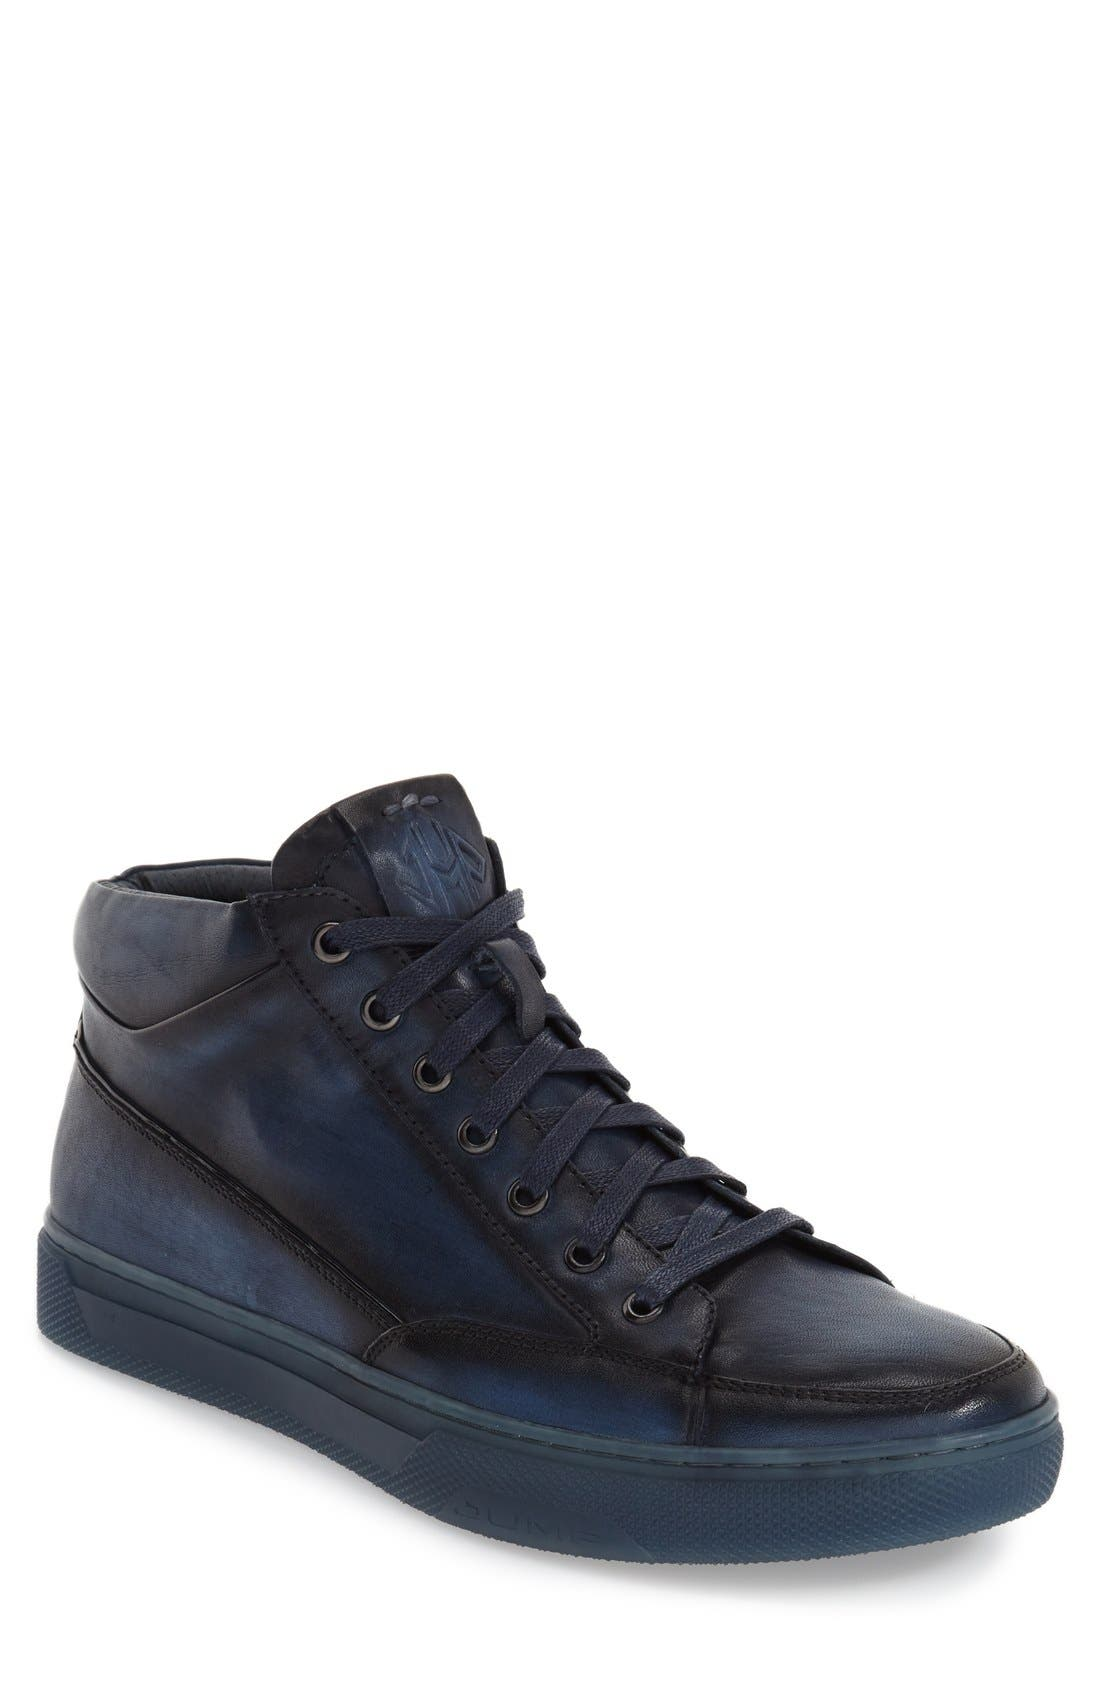 JUMP 'Strickland' Sneaker, Main, color, NAVY LEATHER